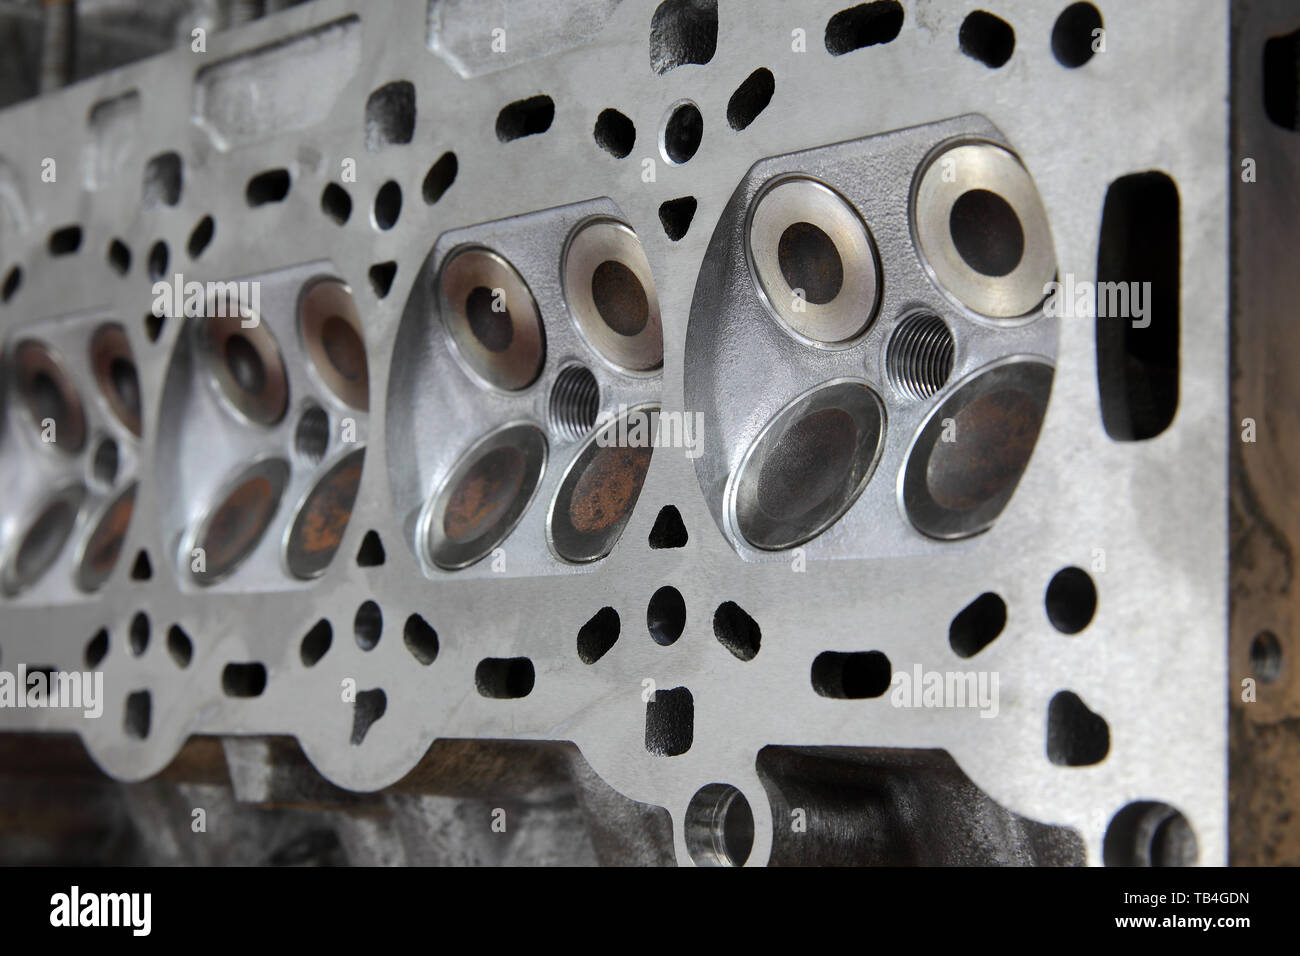 Cylinder Head Engine Stock Photos & Cylinder Head Engine